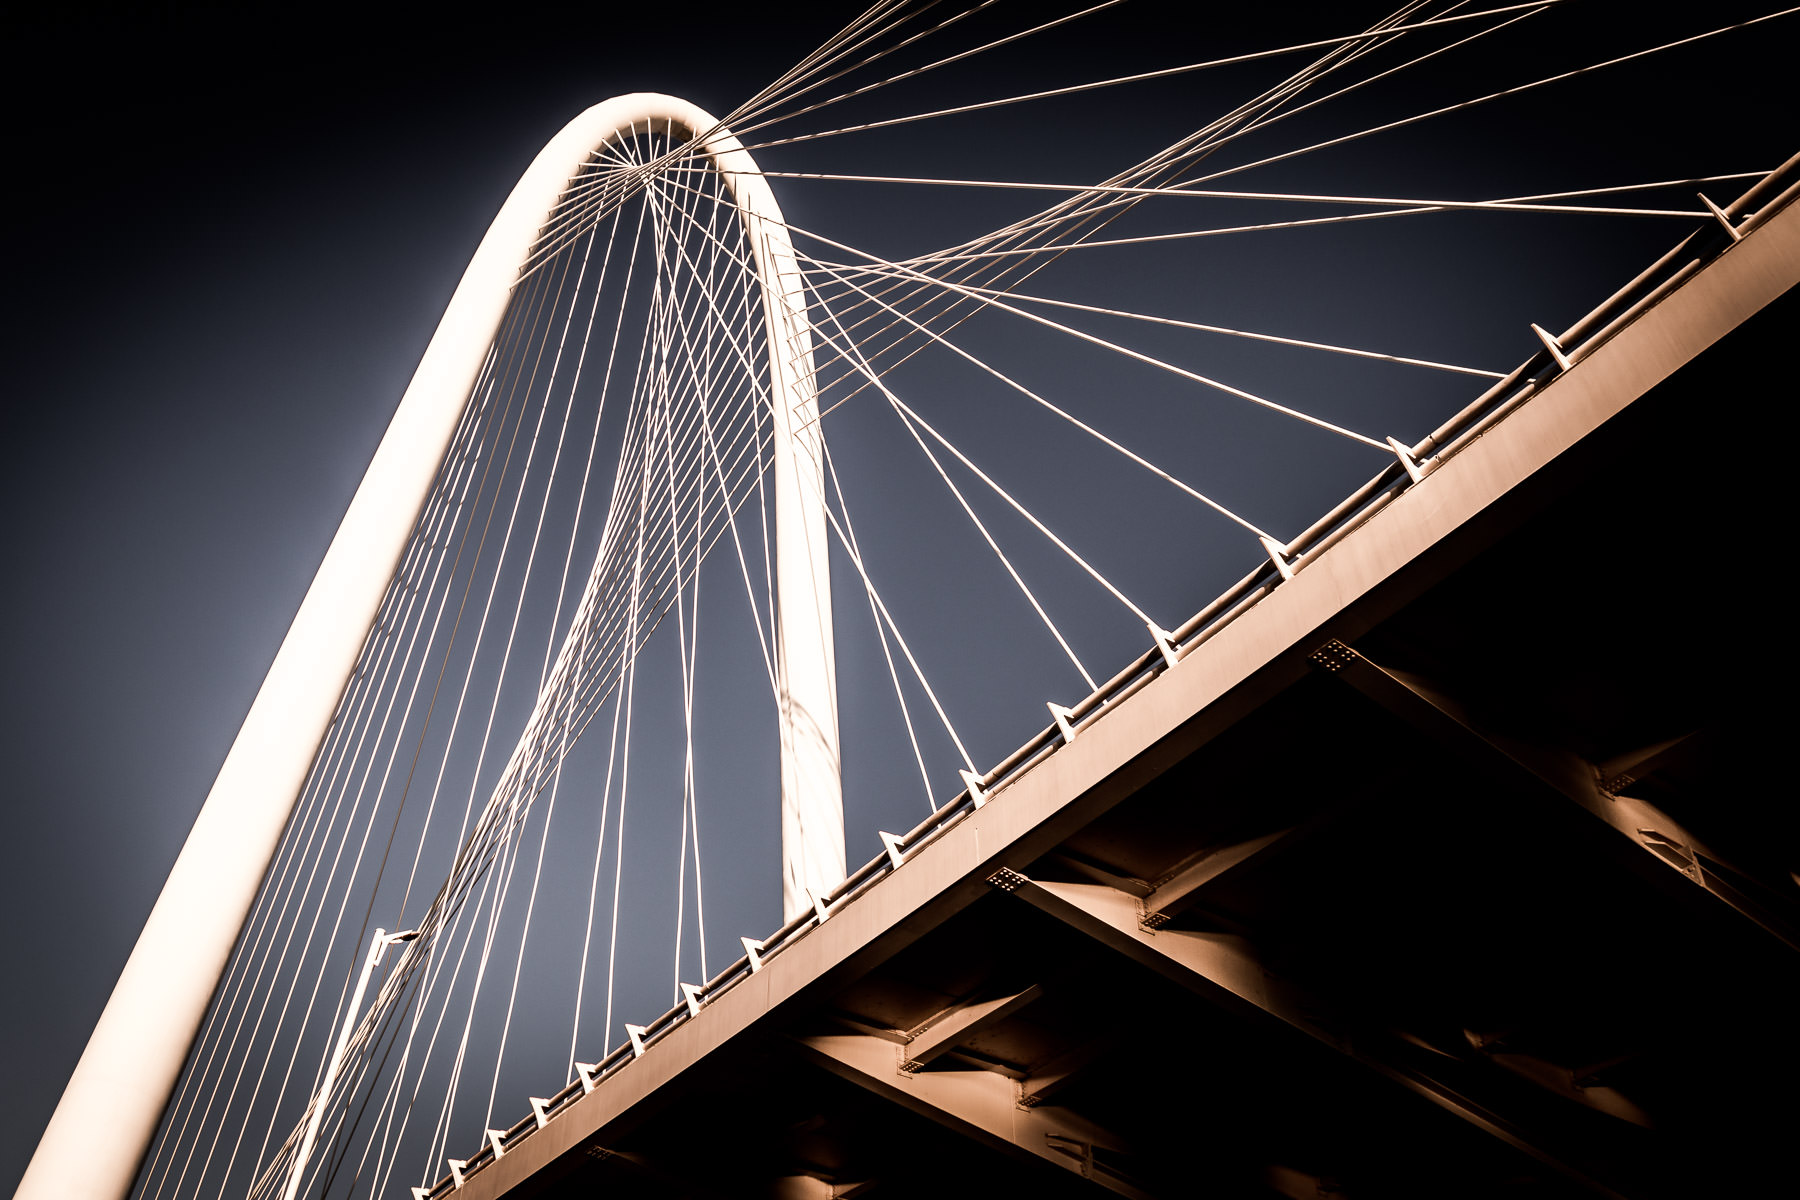 The Santiago Calatrava-designed Margaret Hunt Hill Bridge rises into the sky over Dallas.